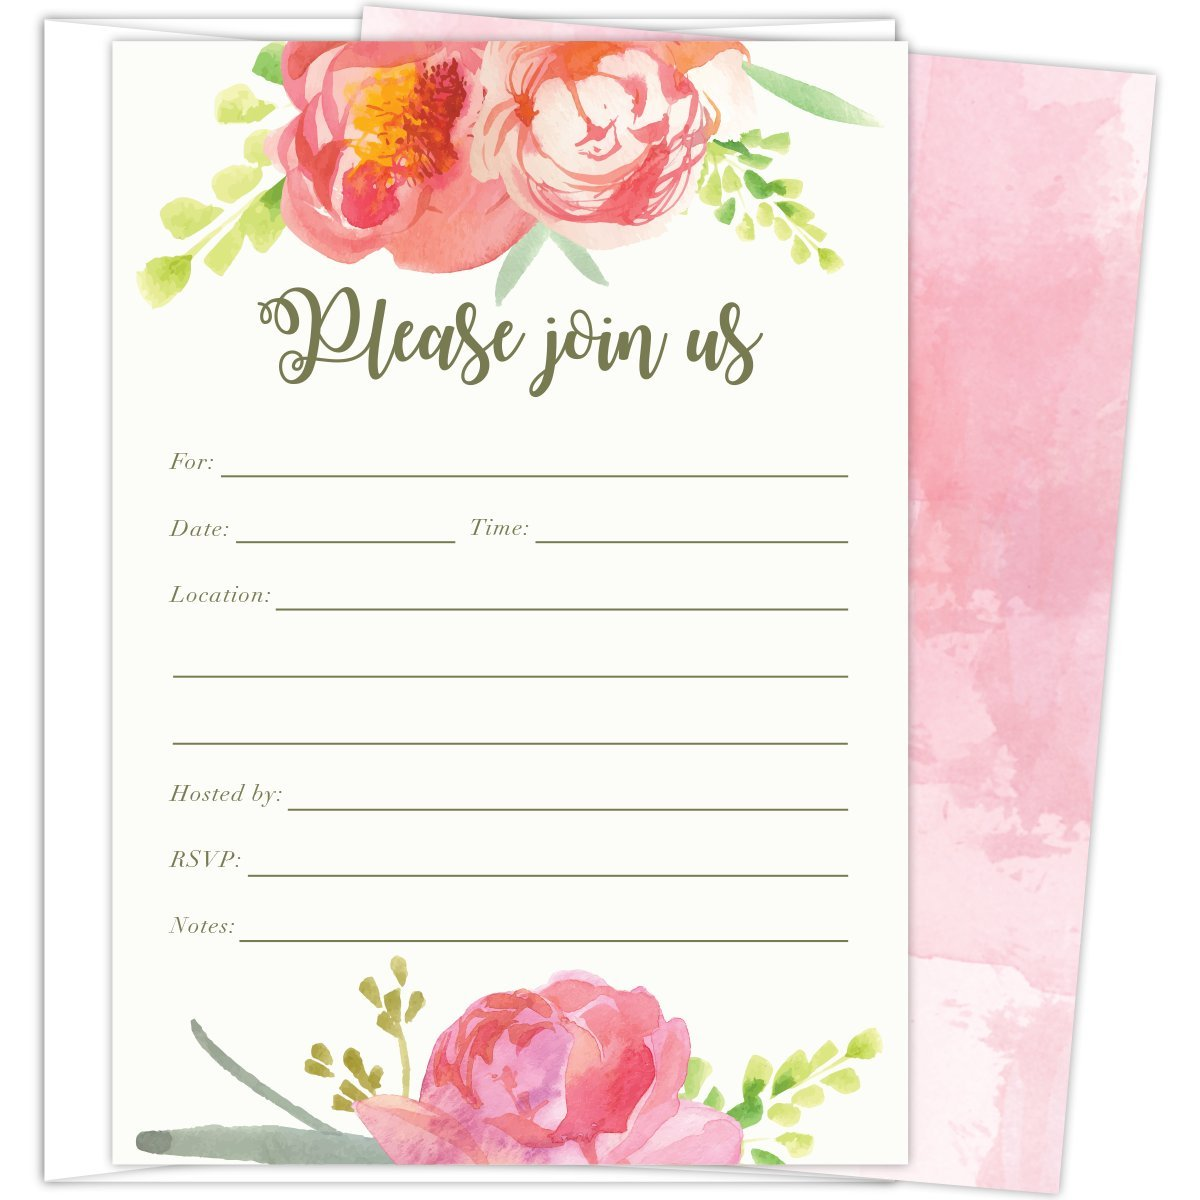 Pink Vintage Floral Set of 25 Fill-in Invitations and Envelopes for Soirees, Bridal Showers, Baby Showers, Birthdays, Graduations, Dinner Parties, Rehearsal Dinners and Bachelorette Parties. by Koko Paper Co